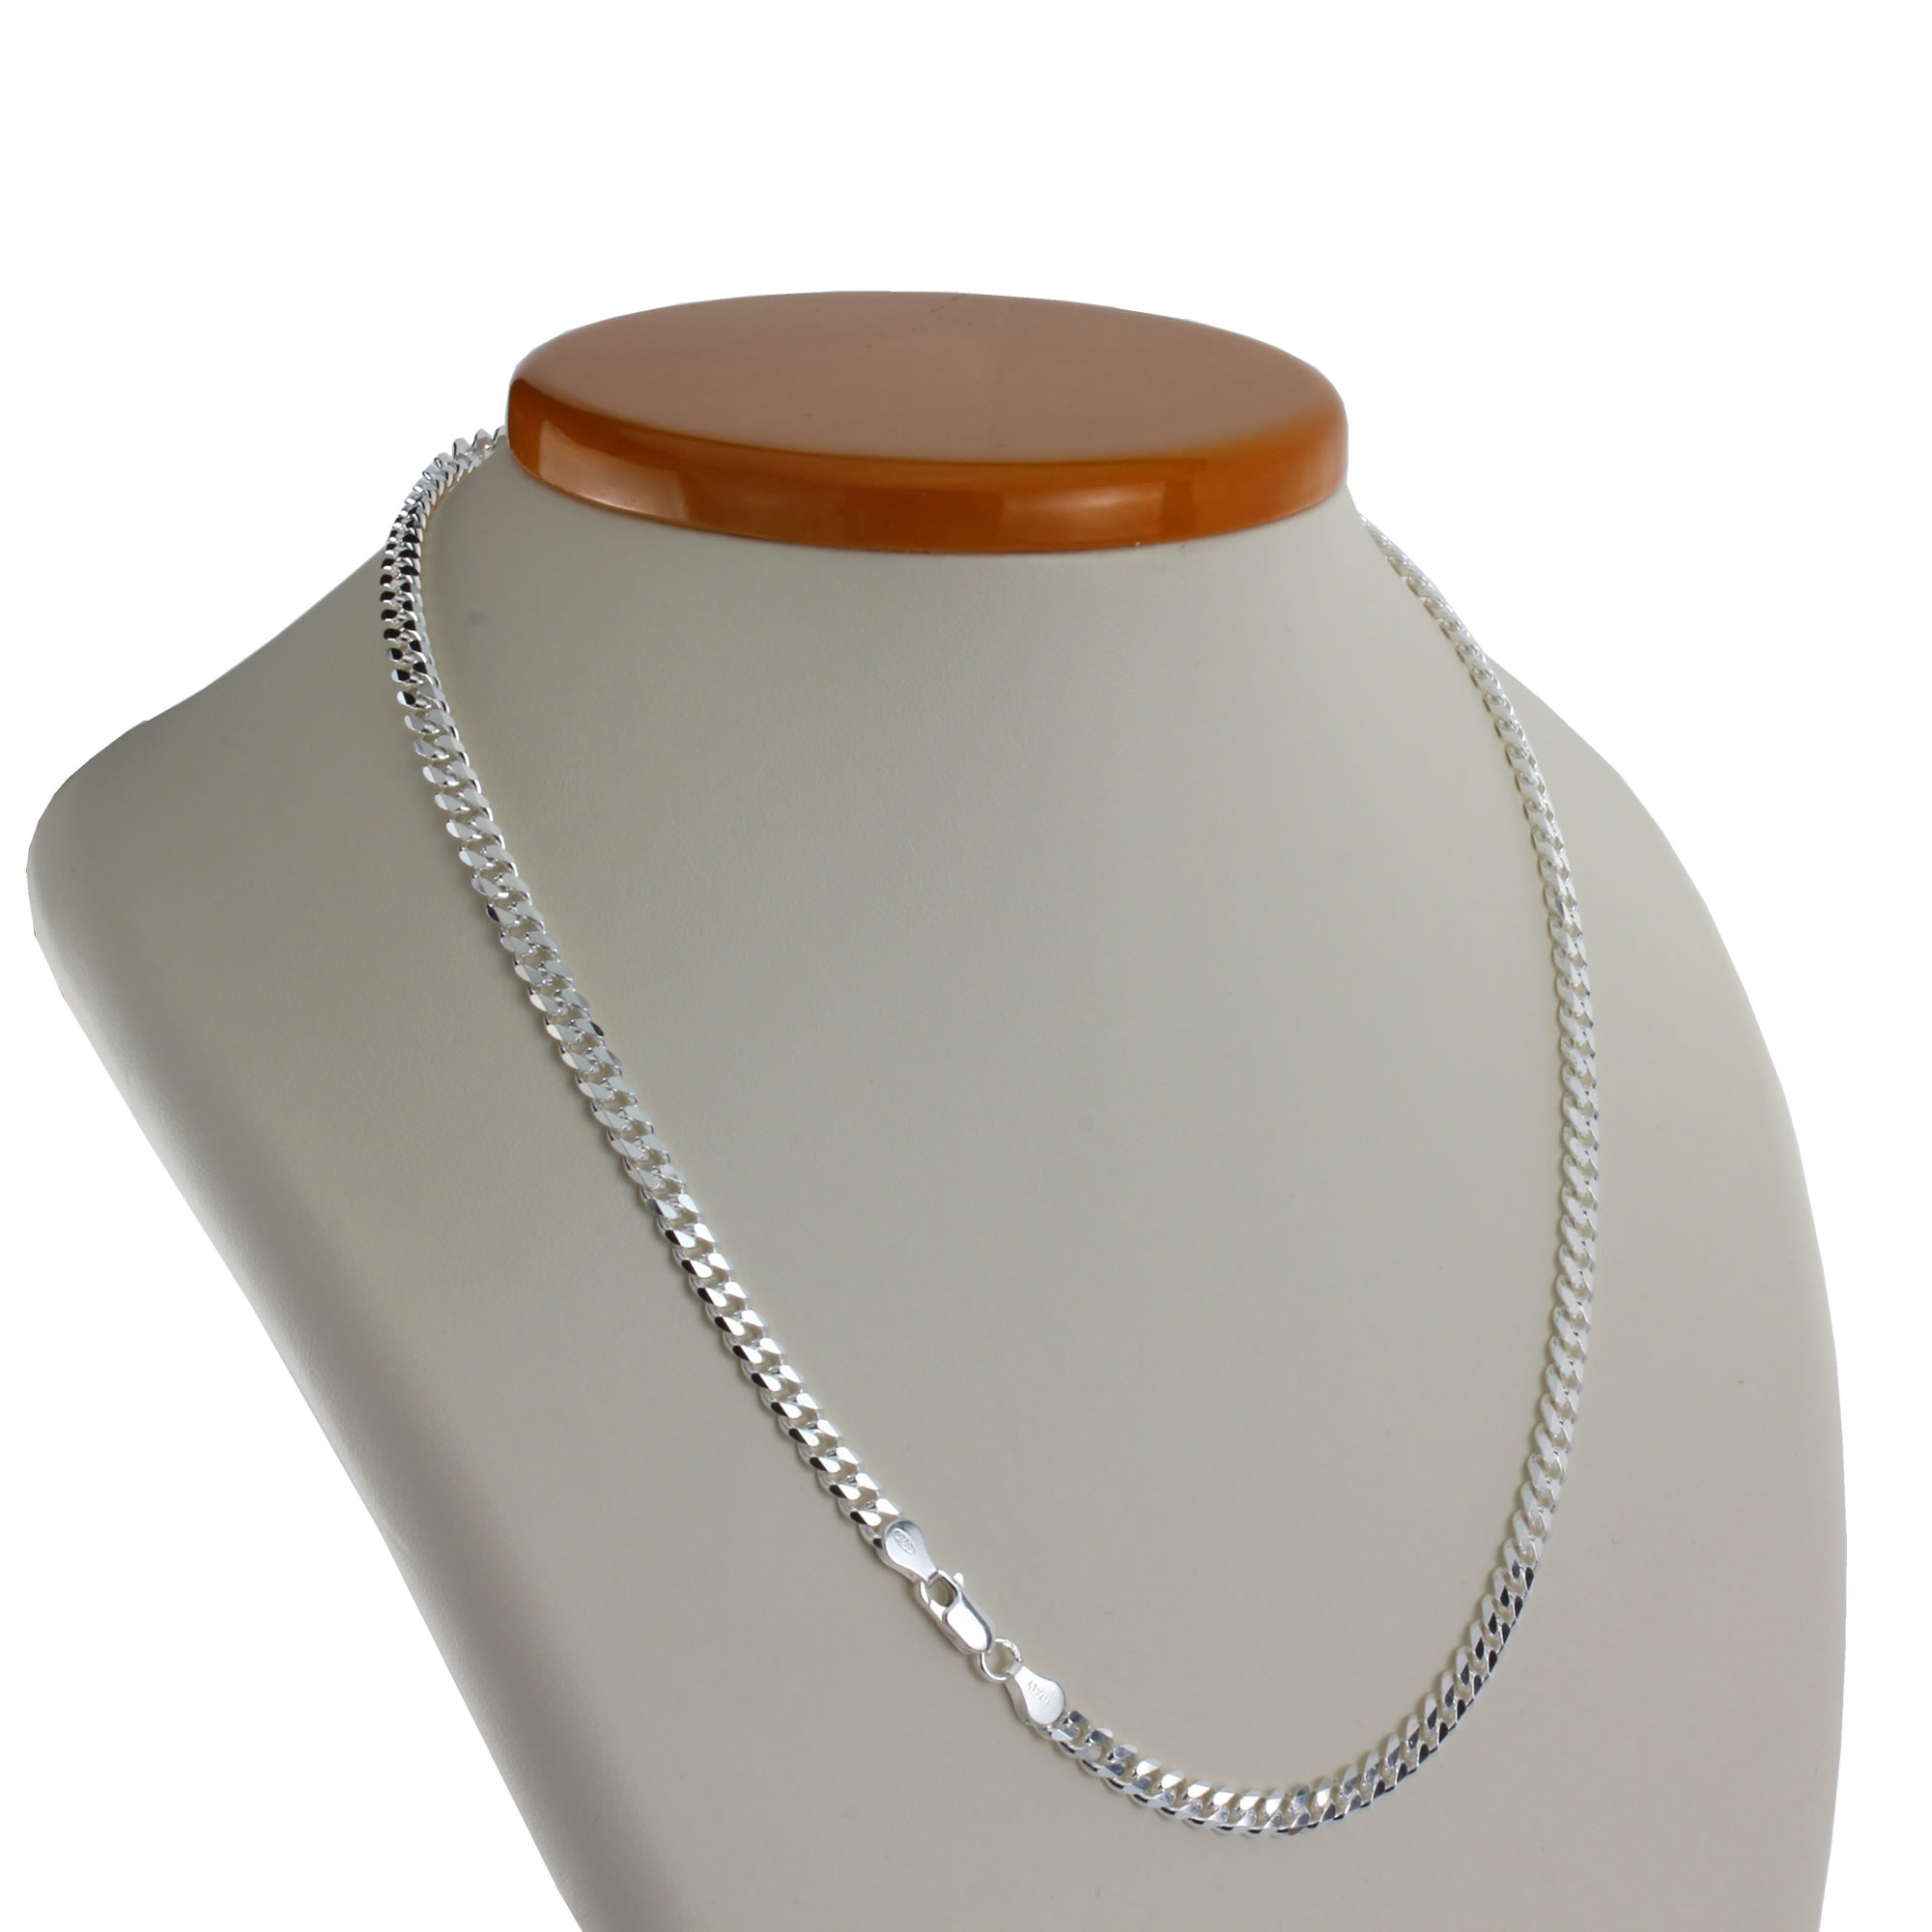 Solid Sterling Silver 5.30Mm Width Curb Chain Pertaining To 2019 Curb Chain Necklaces (Gallery 15 of 25)